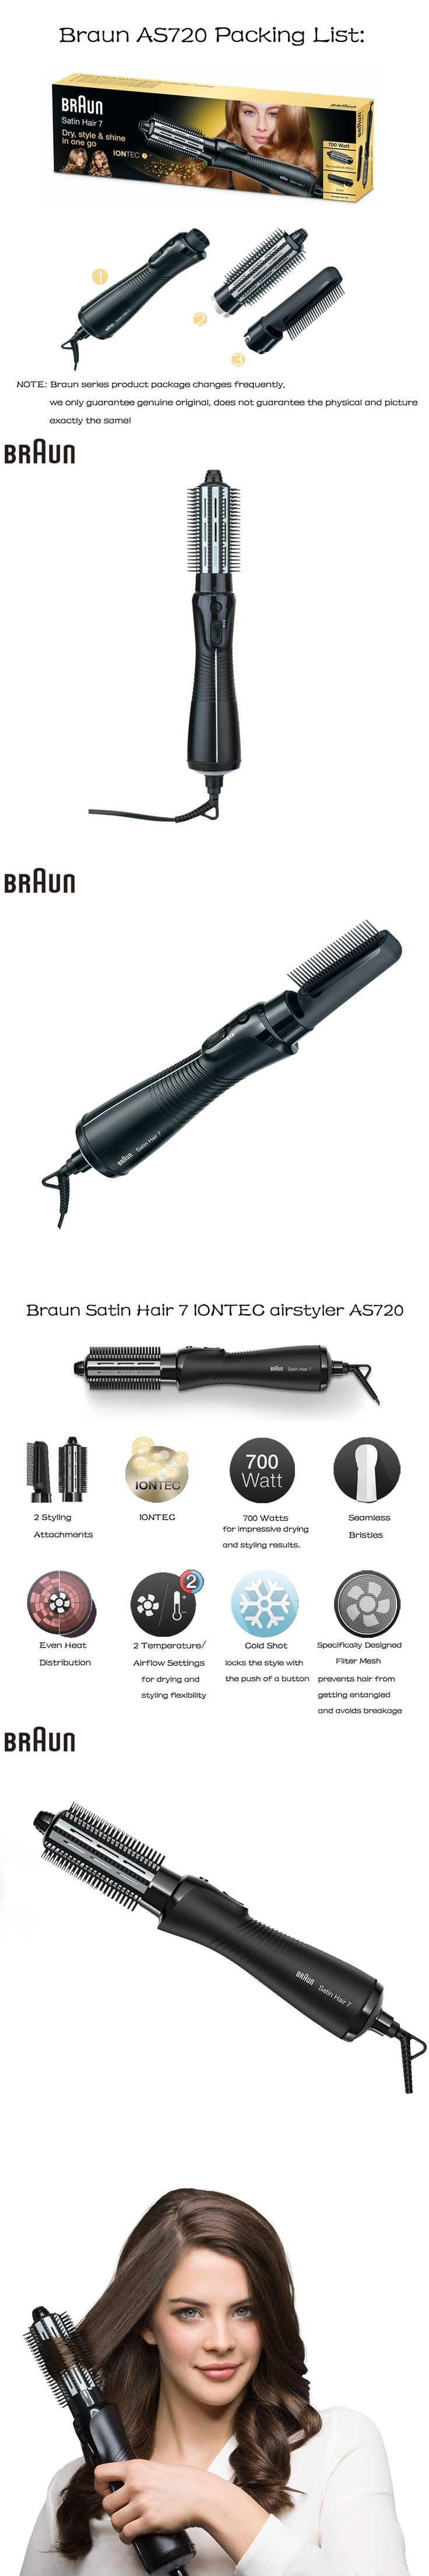 Braun AS720 3 in 1 hair Curling Straightening Irons Hair care Styling Tools Accessories Curler Dryer Combs Satin Hair 7 IONTEC